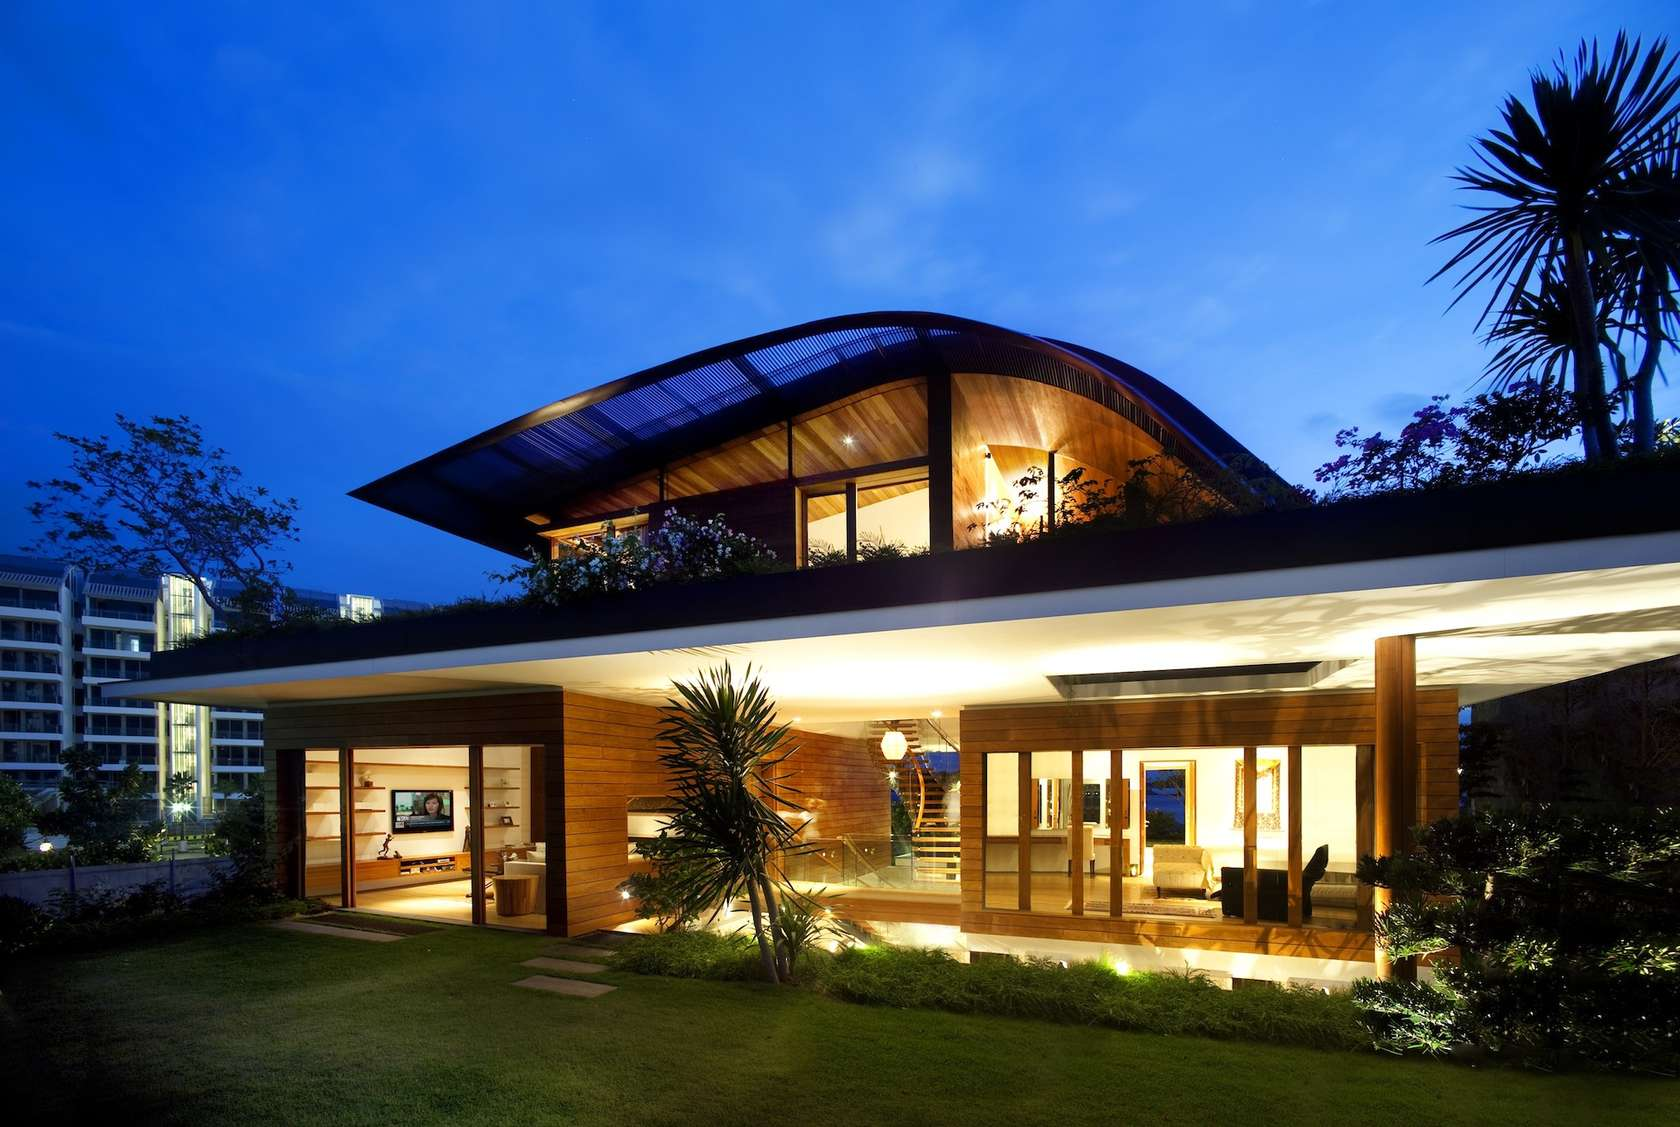 Houses Built Underground 16 Gorgeous Singapore Homes You Need To See To Believe Thesmartlocal